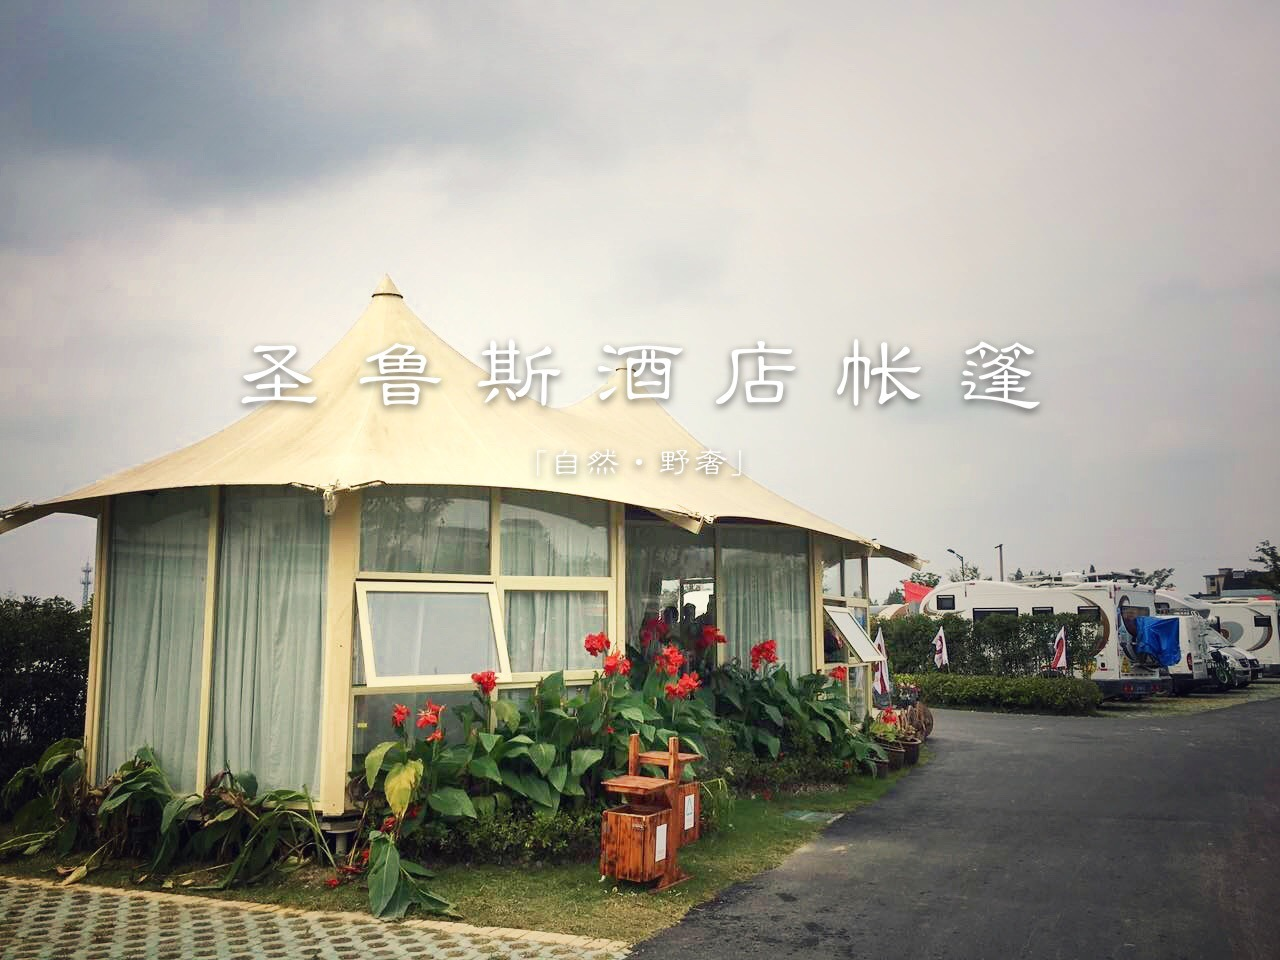 High Quality Five Star Luxury Hotel Tents Resort Tent & China High Quality Five Star Luxury Hotel Tents Resort Tent Photos ...